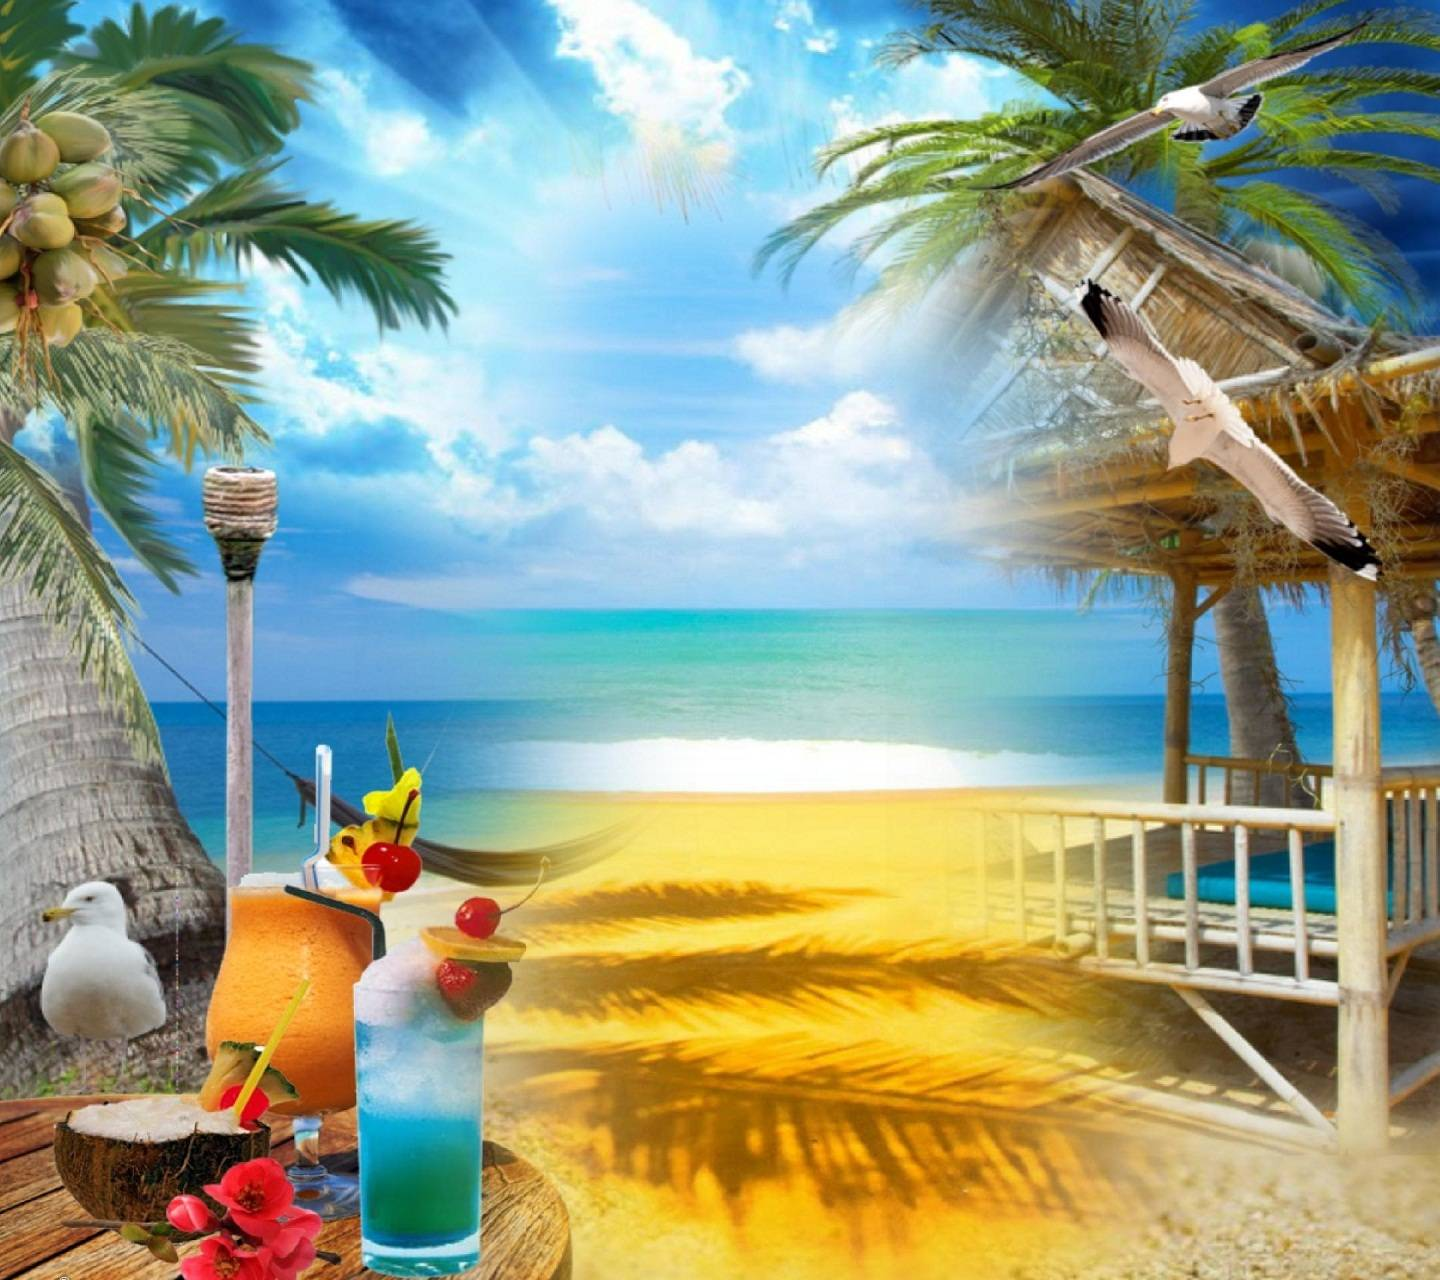 Hd Summer Beach wallpapers by _sn0w_